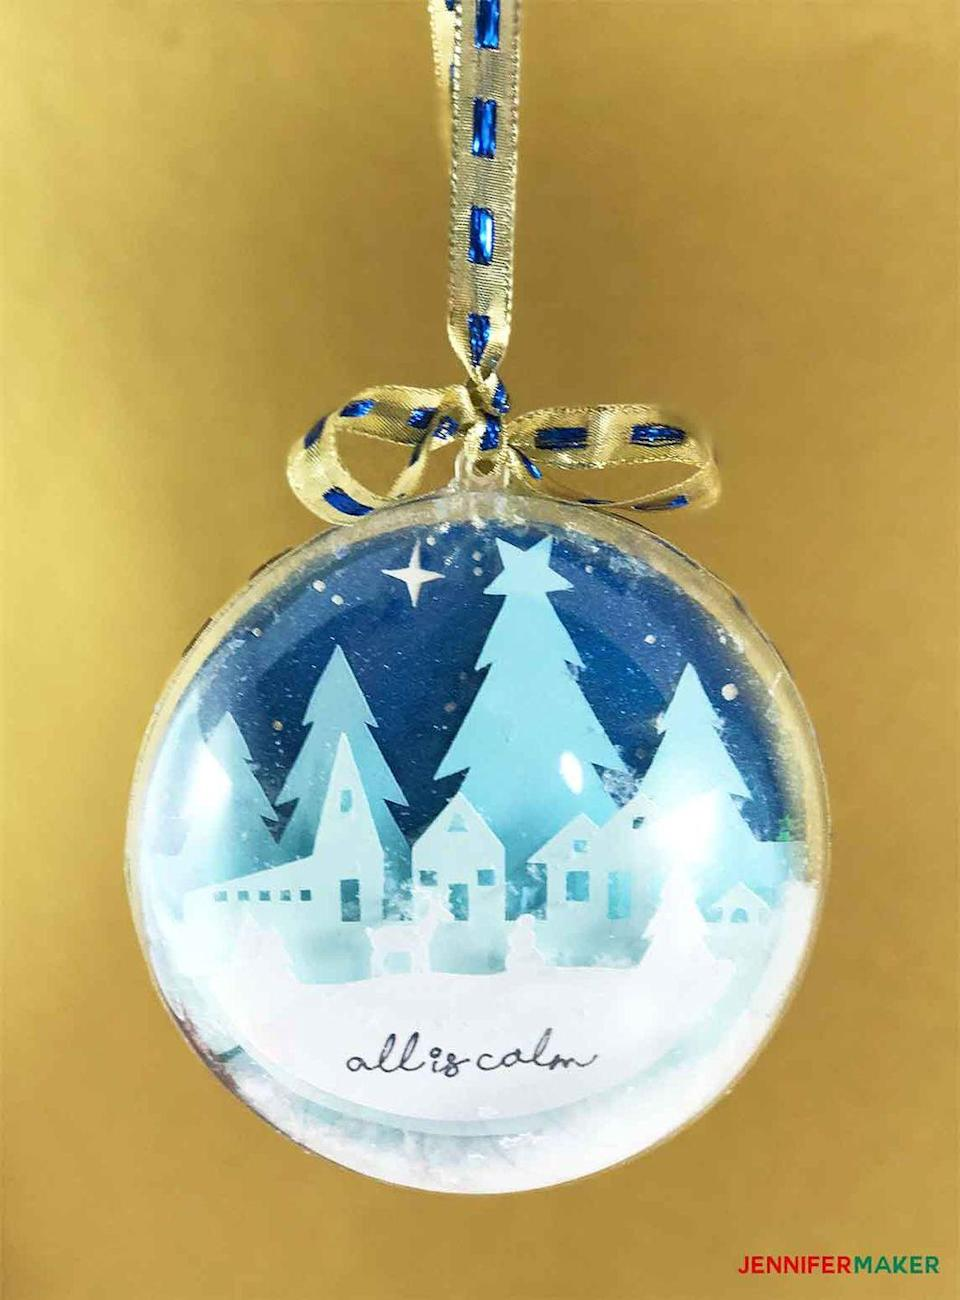 """<p>Use a clear fillable ornament to make a personalized snow globe. While this example uses small paper cutouts, you could just as easily use photos. </p><p><em>Get the tutorial at <a href=""""https://jennifermaker.com/diy-glitter-ball-ornament/"""" rel=""""nofollow noopener"""" target=""""_blank"""" data-ylk=""""slk:Jennifer Maker"""" class=""""link rapid-noclick-resp"""">Jennifer Maker</a>.</em></p><p><a class=""""link rapid-noclick-resp"""" href=""""https://www.amazon.com/Seekingtag-Clear-Fillable-Ornaments-Ball/dp/B00SXUQN3W/?tag=syn-yahoo-20&ascsubtag=%5Bartid%7C10072.g.34443405%5Bsrc%7Cyahoo-us"""" rel=""""nofollow noopener"""" target=""""_blank"""" data-ylk=""""slk:SHOP CLEAR ORNAMENTS"""">SHOP CLEAR ORNAMENTS</a></p>"""